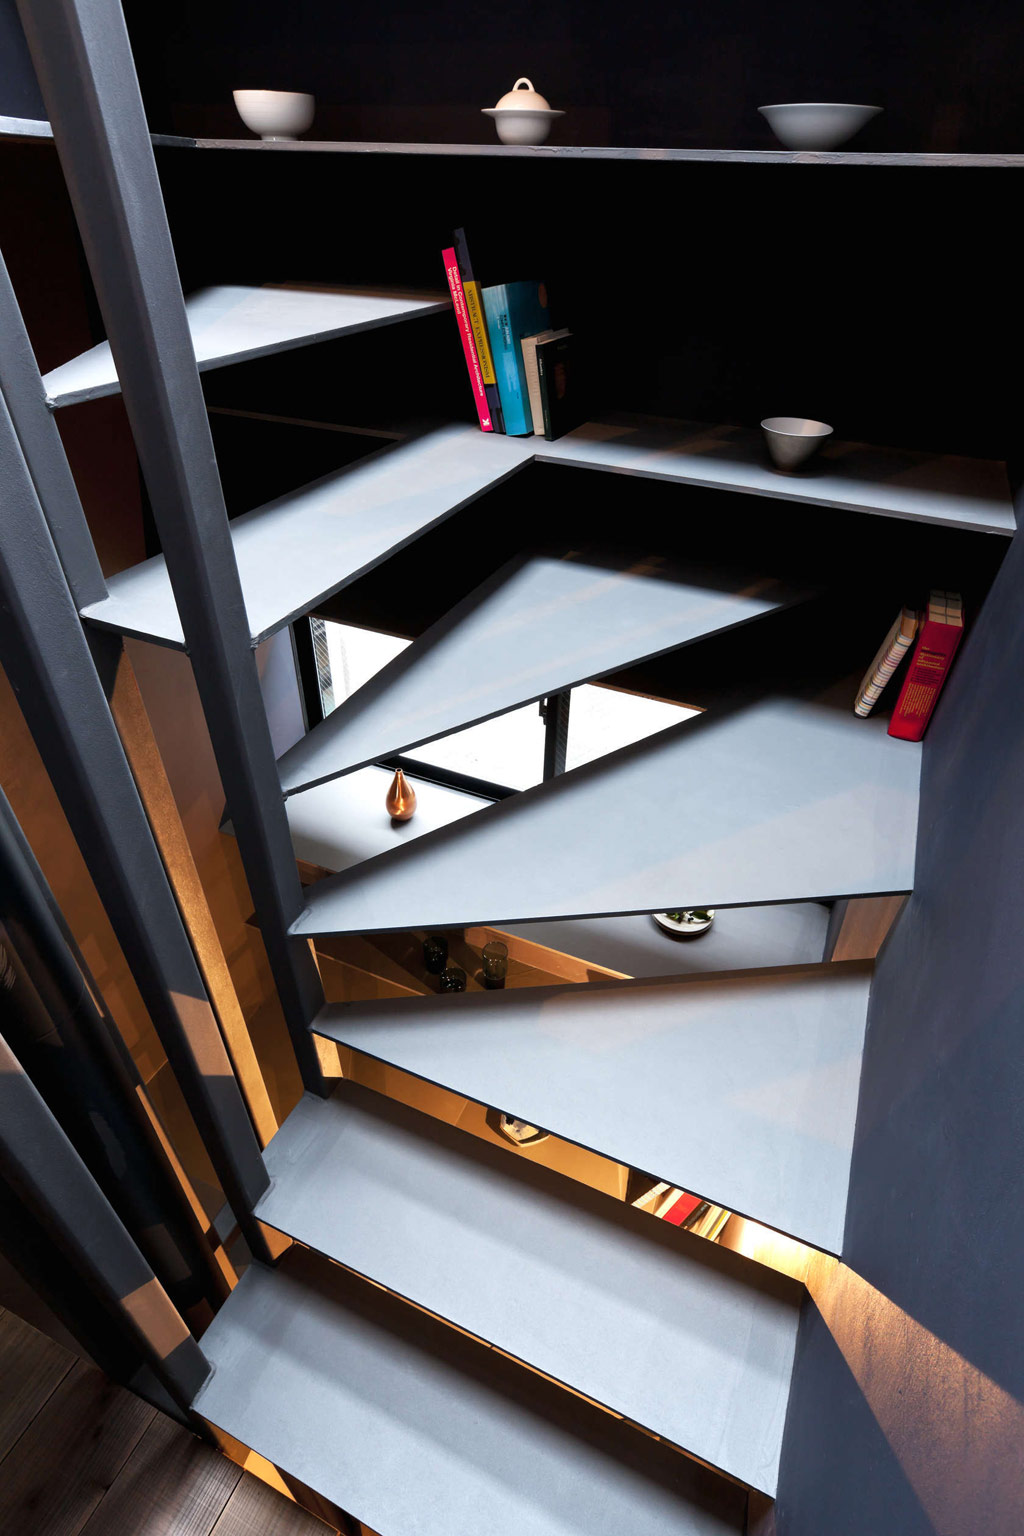 Toshima-long-and-narrow-house-stairs-and-shelves